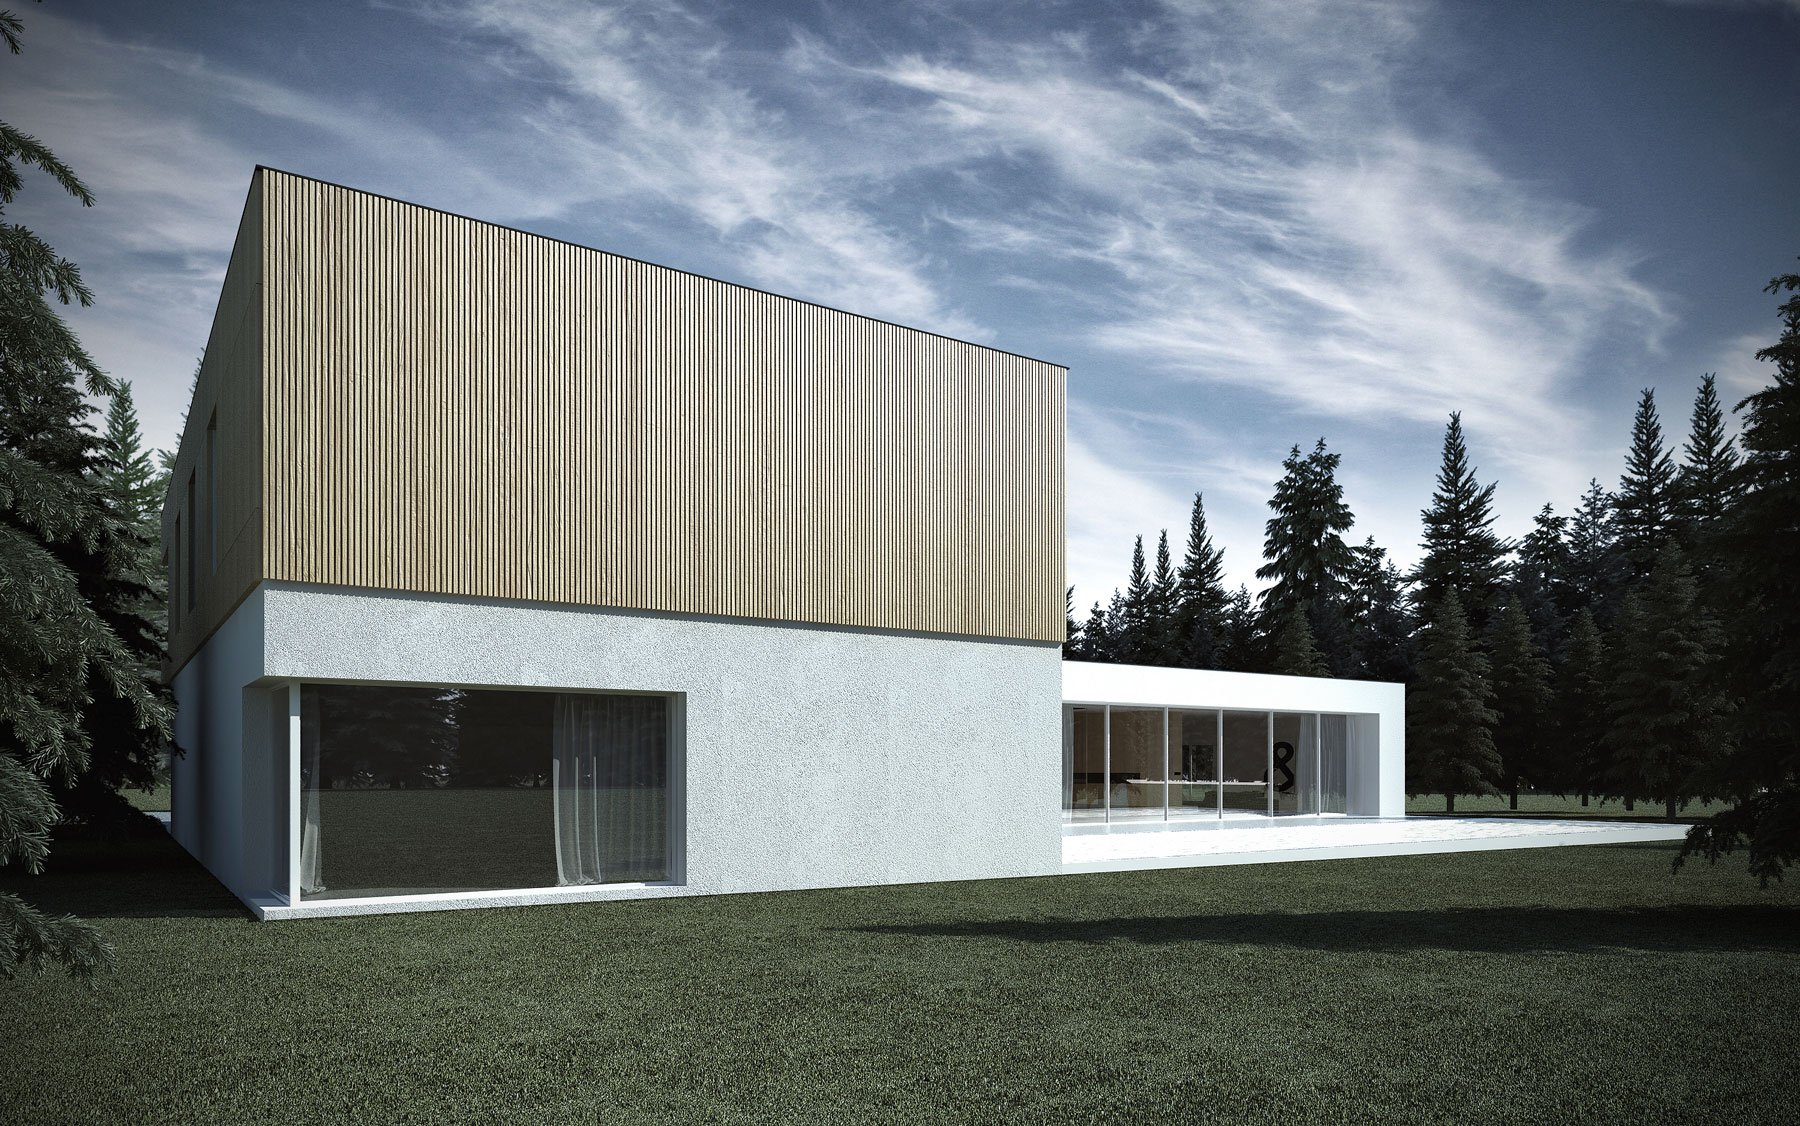 Elevation Woodwork : Minimalist shape with wooden verticals on the elevations